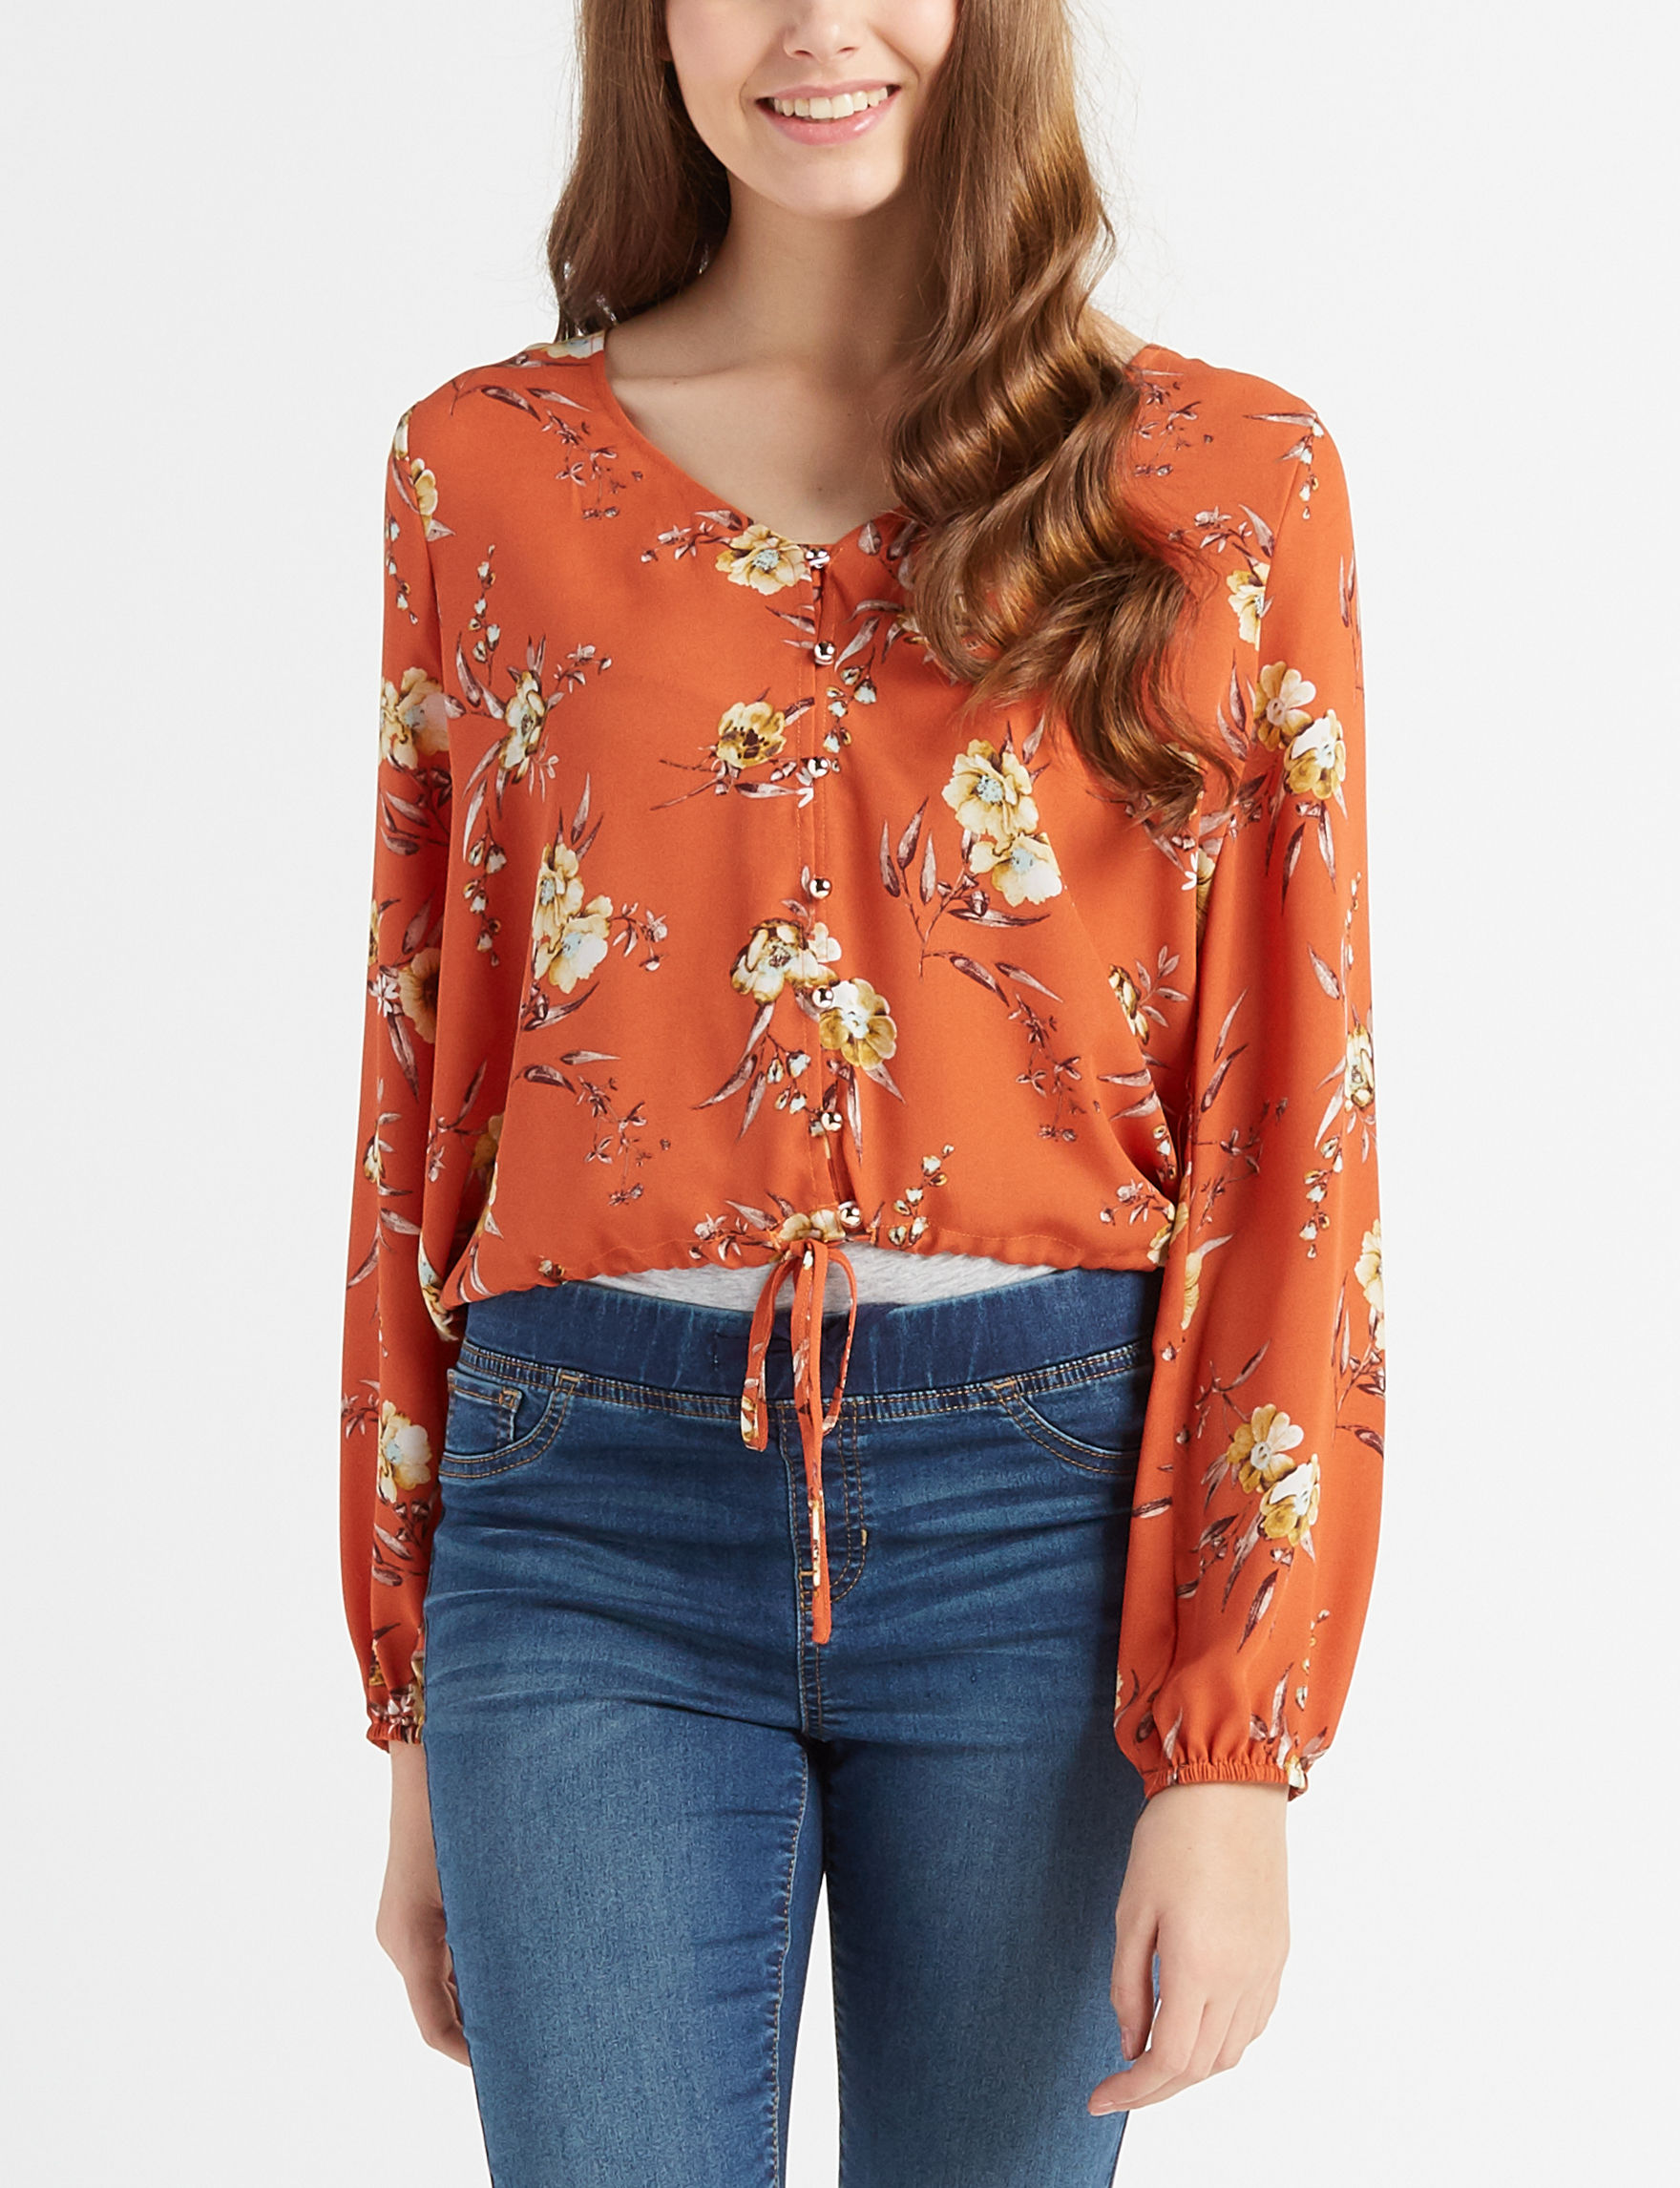 Justify Red Floral Shirts & Blouses